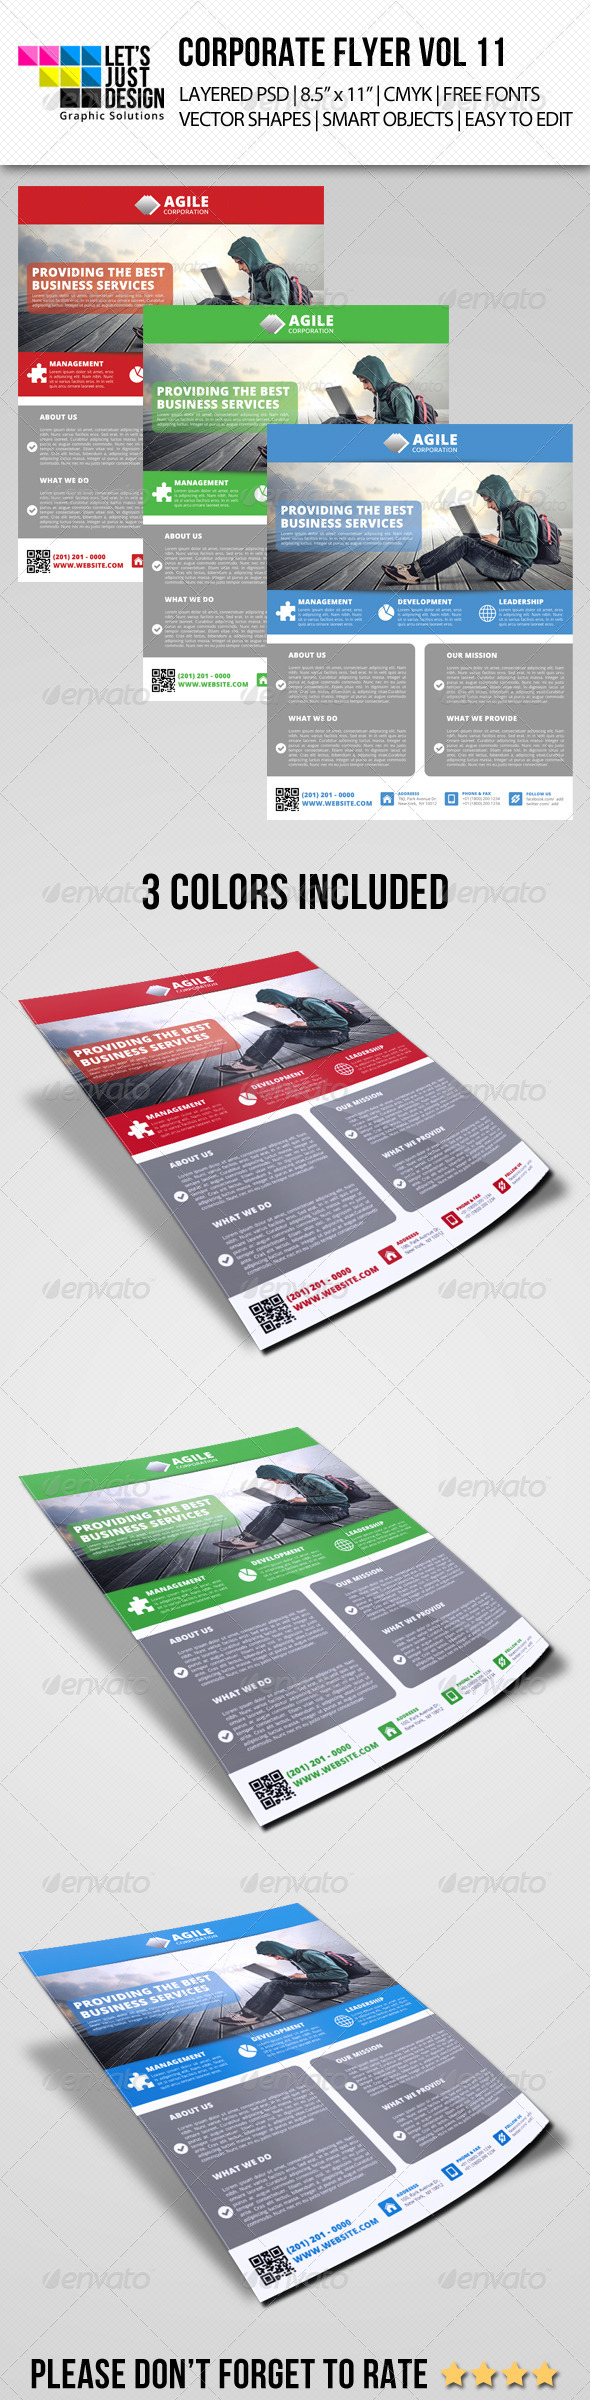 GraphicRiver Corporate Flyer Template Vol 11 7210556